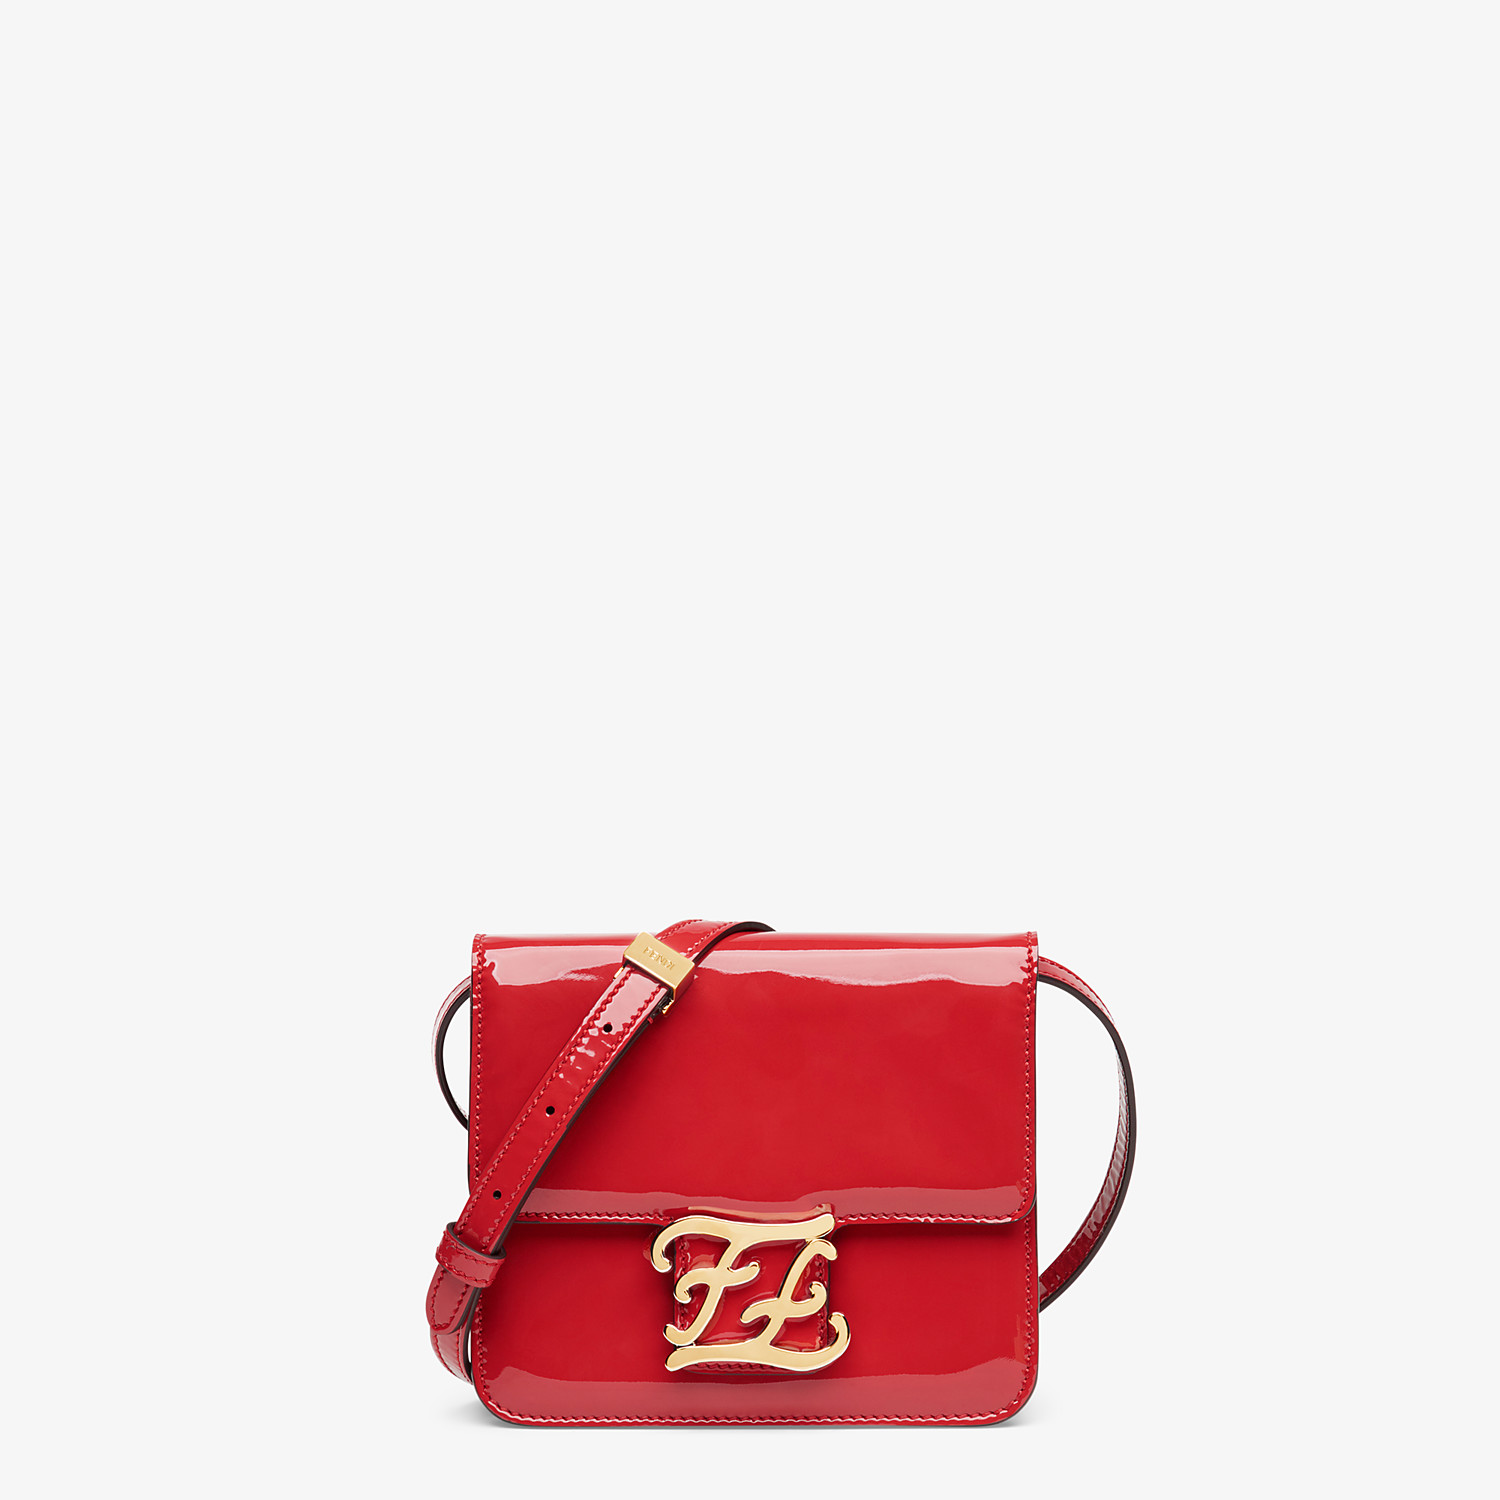 FENDI KARLIGRAPHY - Red patent leather bag - view 1 detail